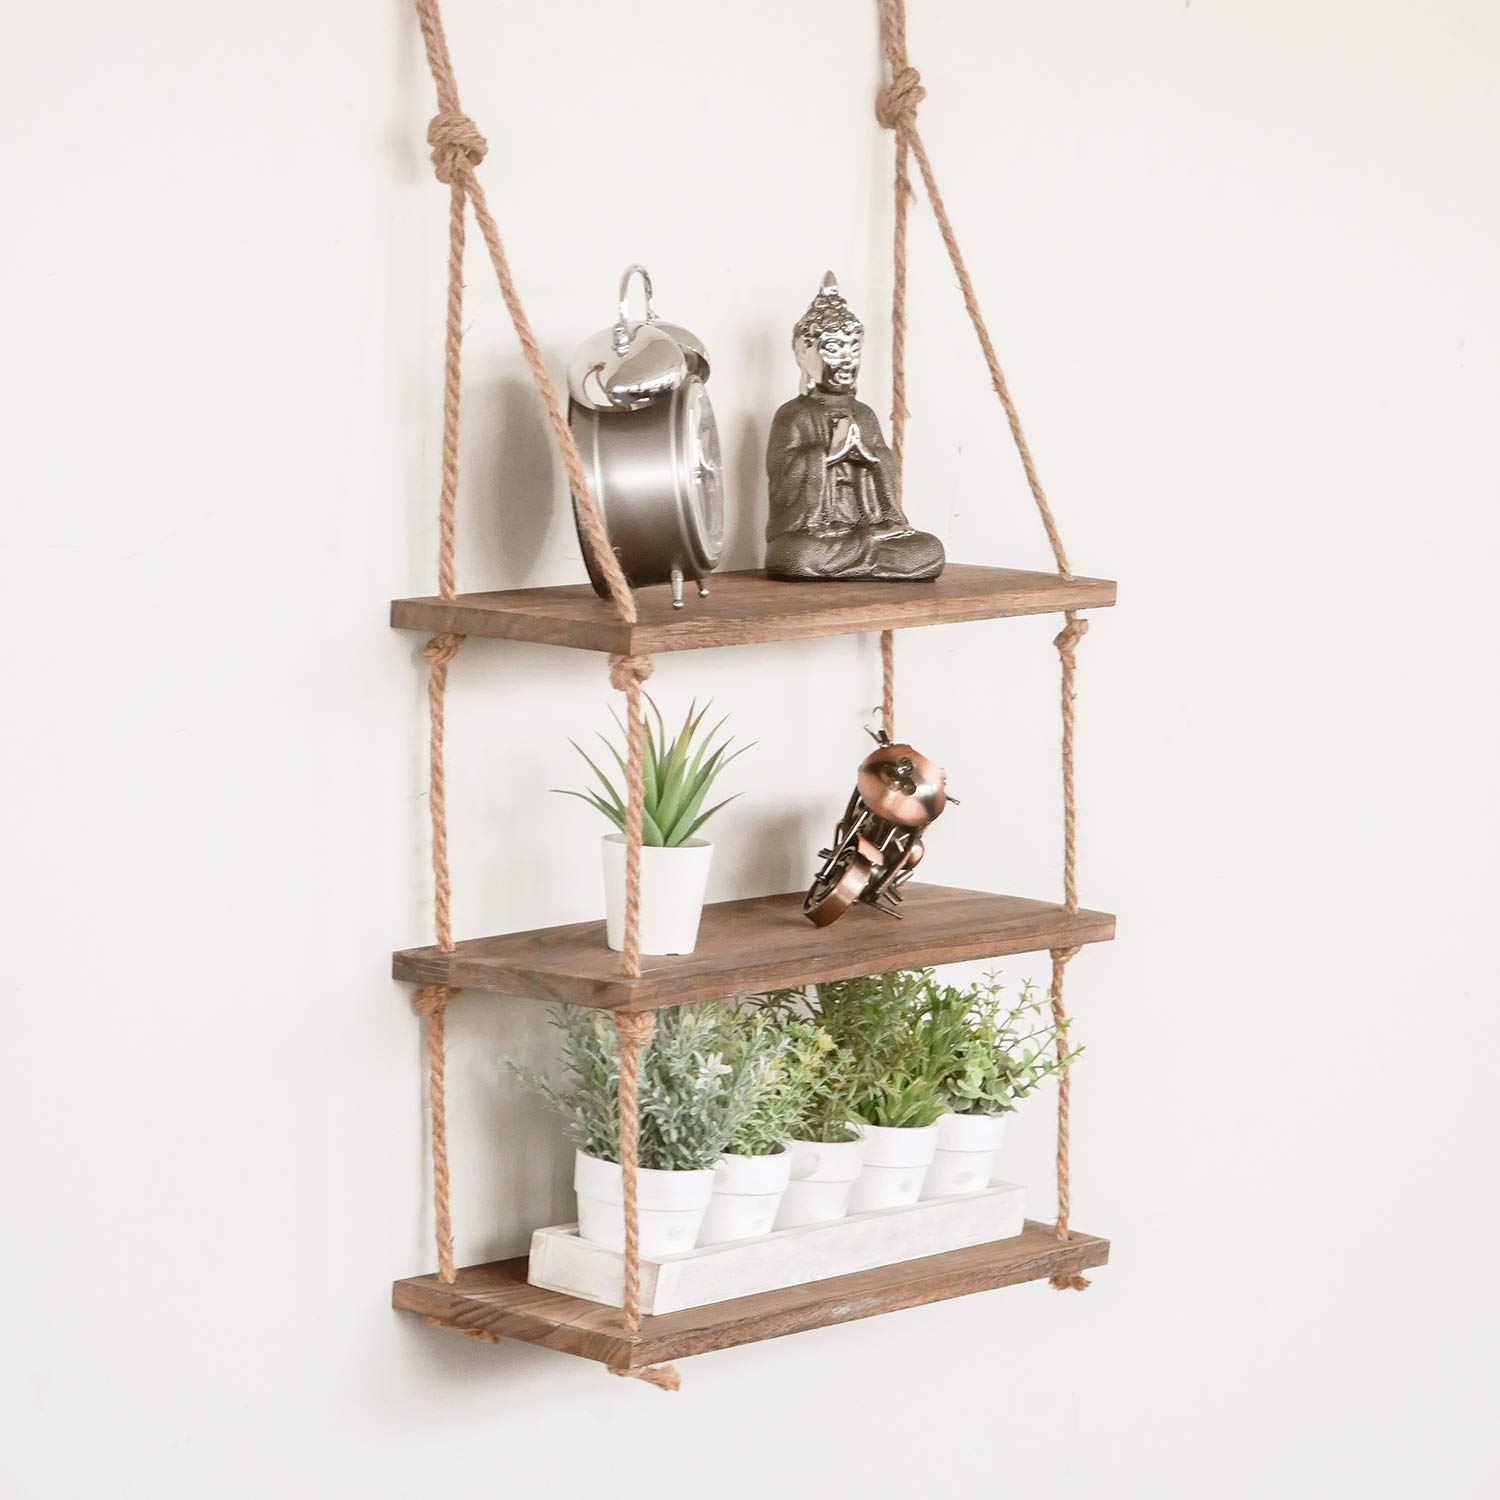 lowest price fe01a eb4e9 HomeZone® 3 Tier Vintage Shabby Chic Shelving With Rope Shelf Rustic  Floating Shelf Multiple Tiered Shelving Wall Hanging Storage Home Storage  ...